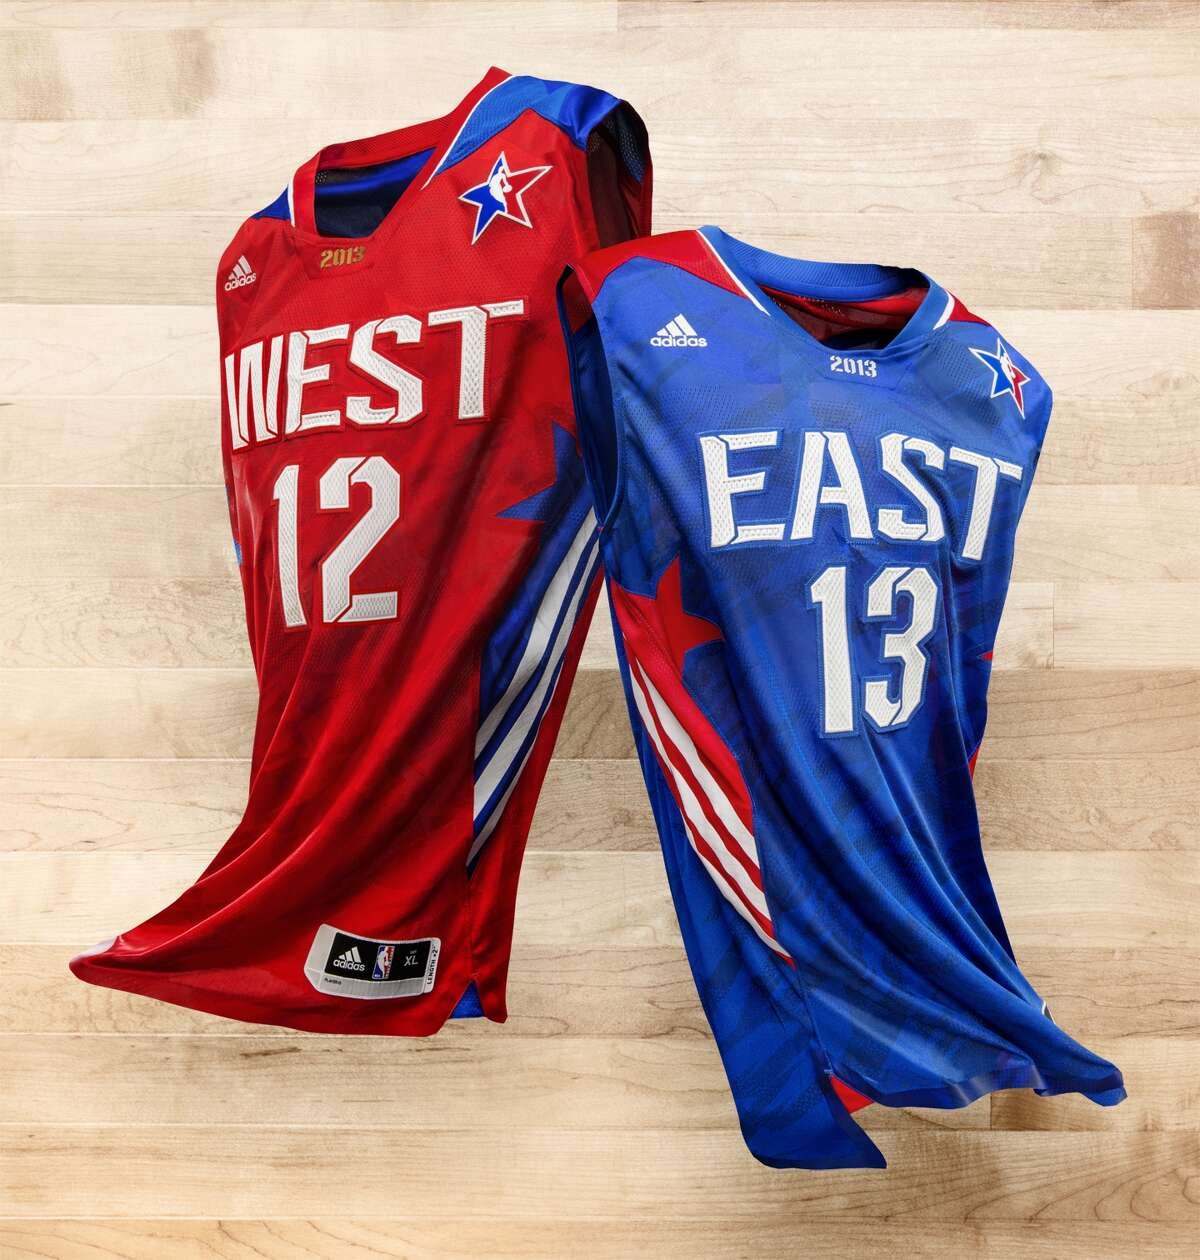 The NBA unveiled the 2013 All-Star uniforms, including a Swingman jersey at $100 and a replica at $55. The shirts will be available at the Houston Rockets Team Shop, Academy and Champs.